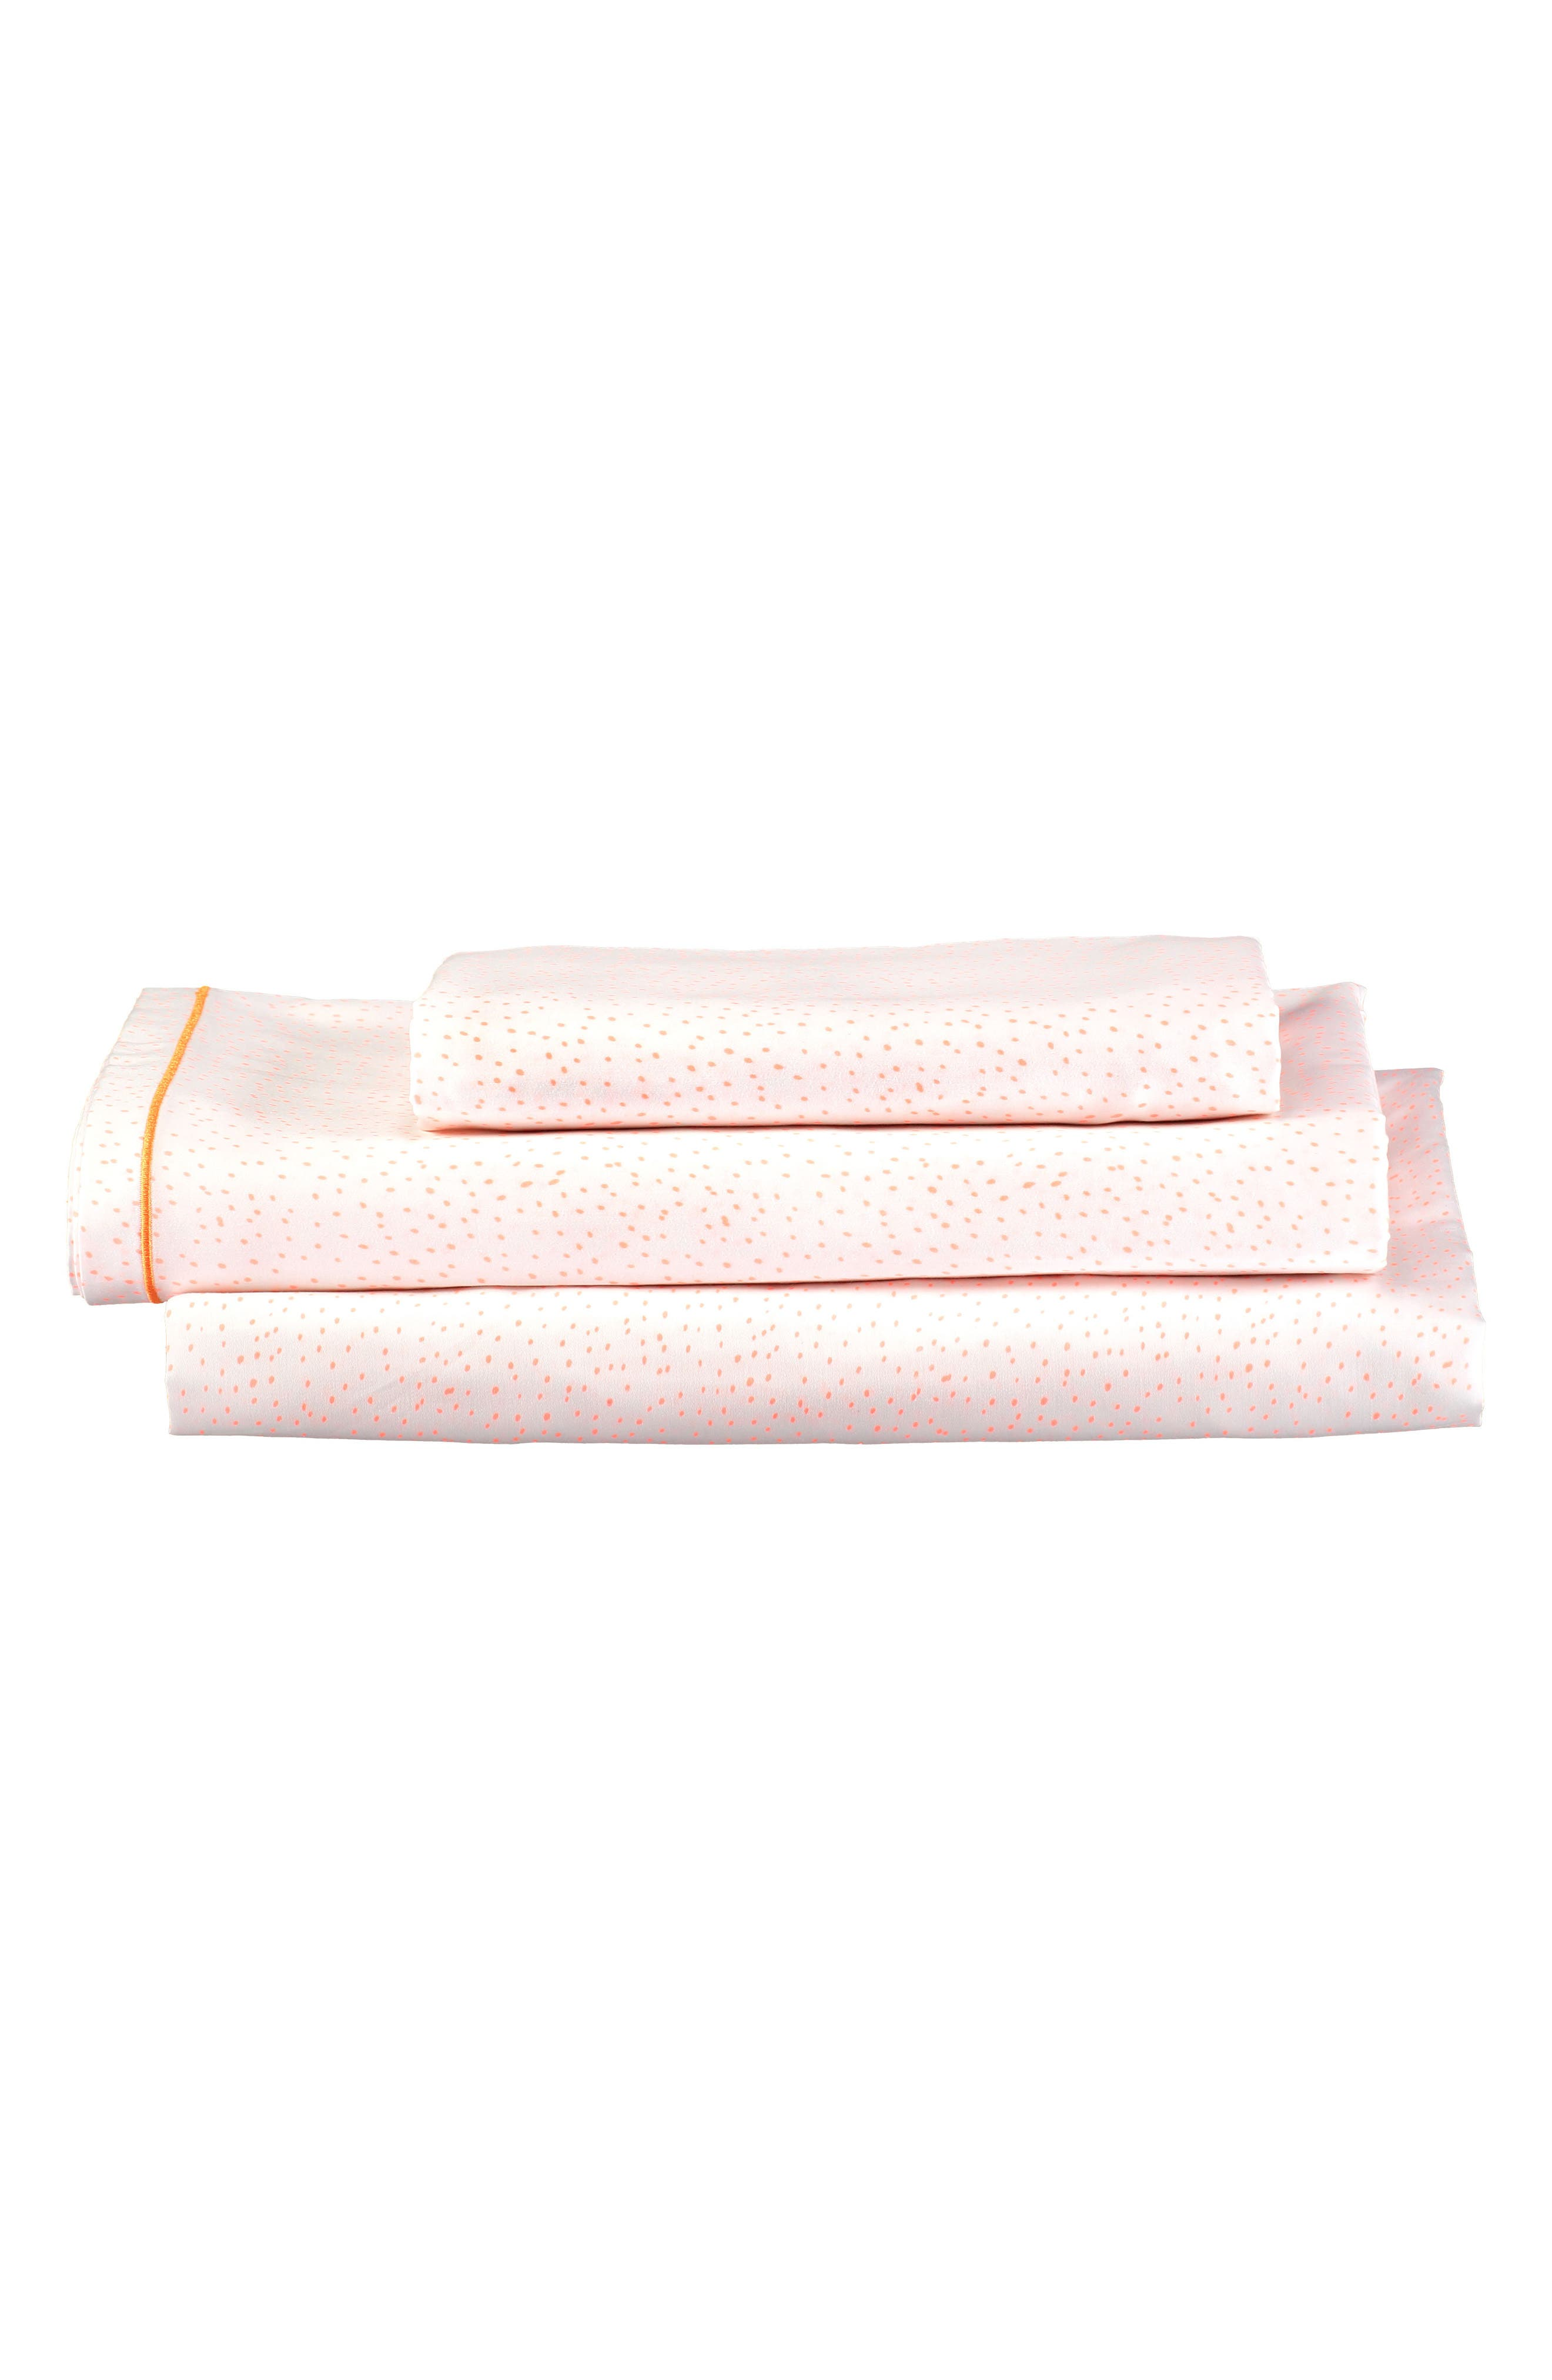 Twin Sheet & Pillowcase Set,                             Main thumbnail 1, color,                             Coral